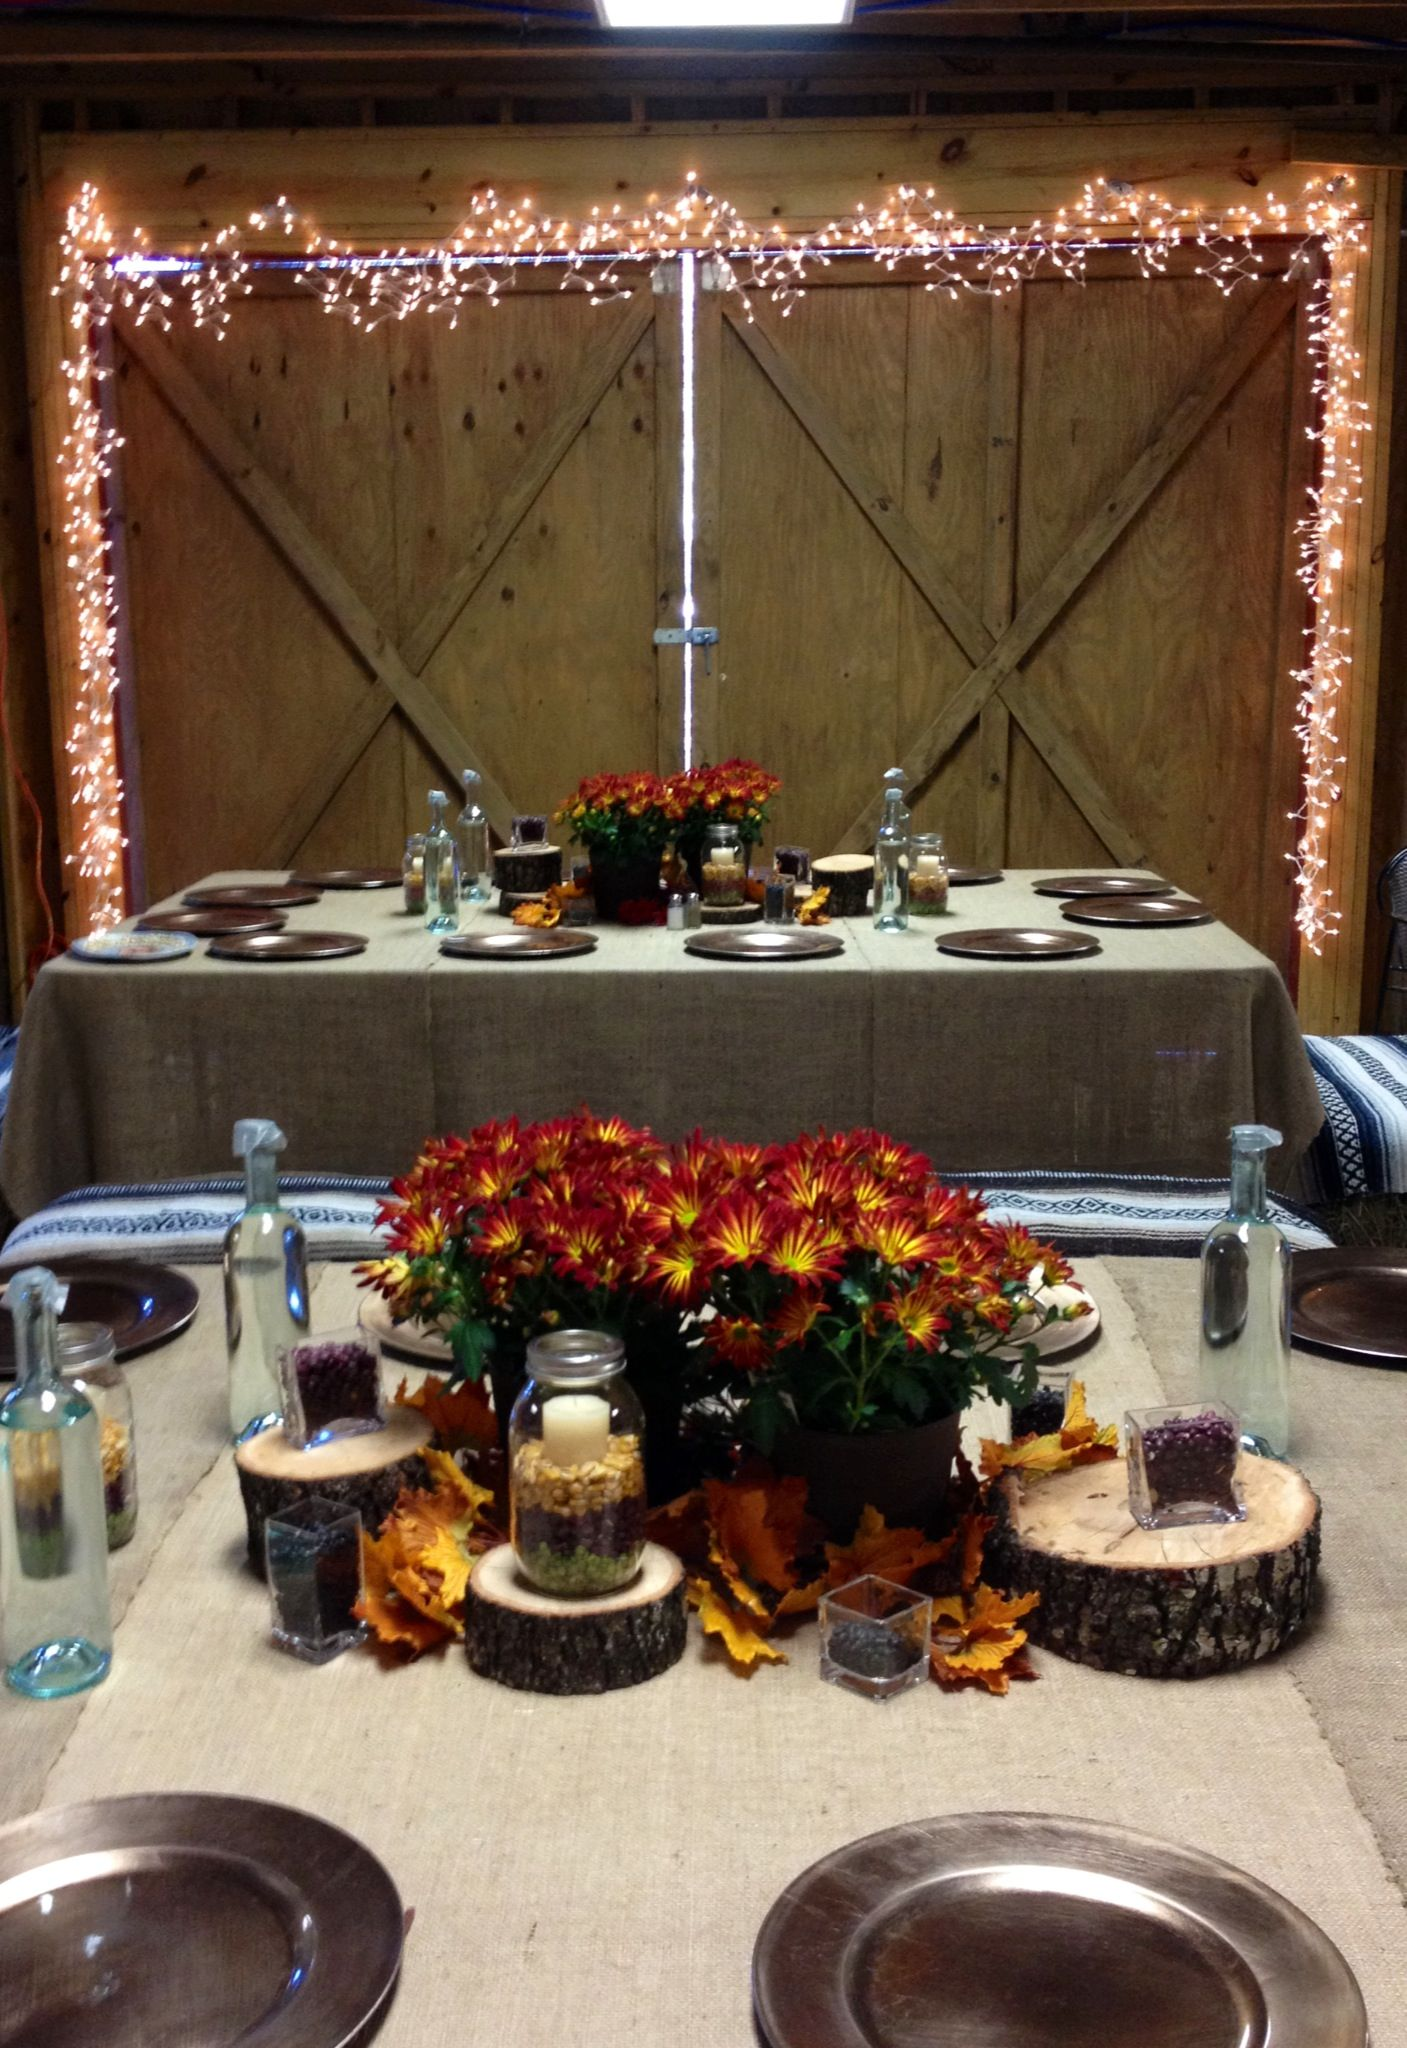 Our amazing thanksgiving setup thanks to Susan! | Rustic ...